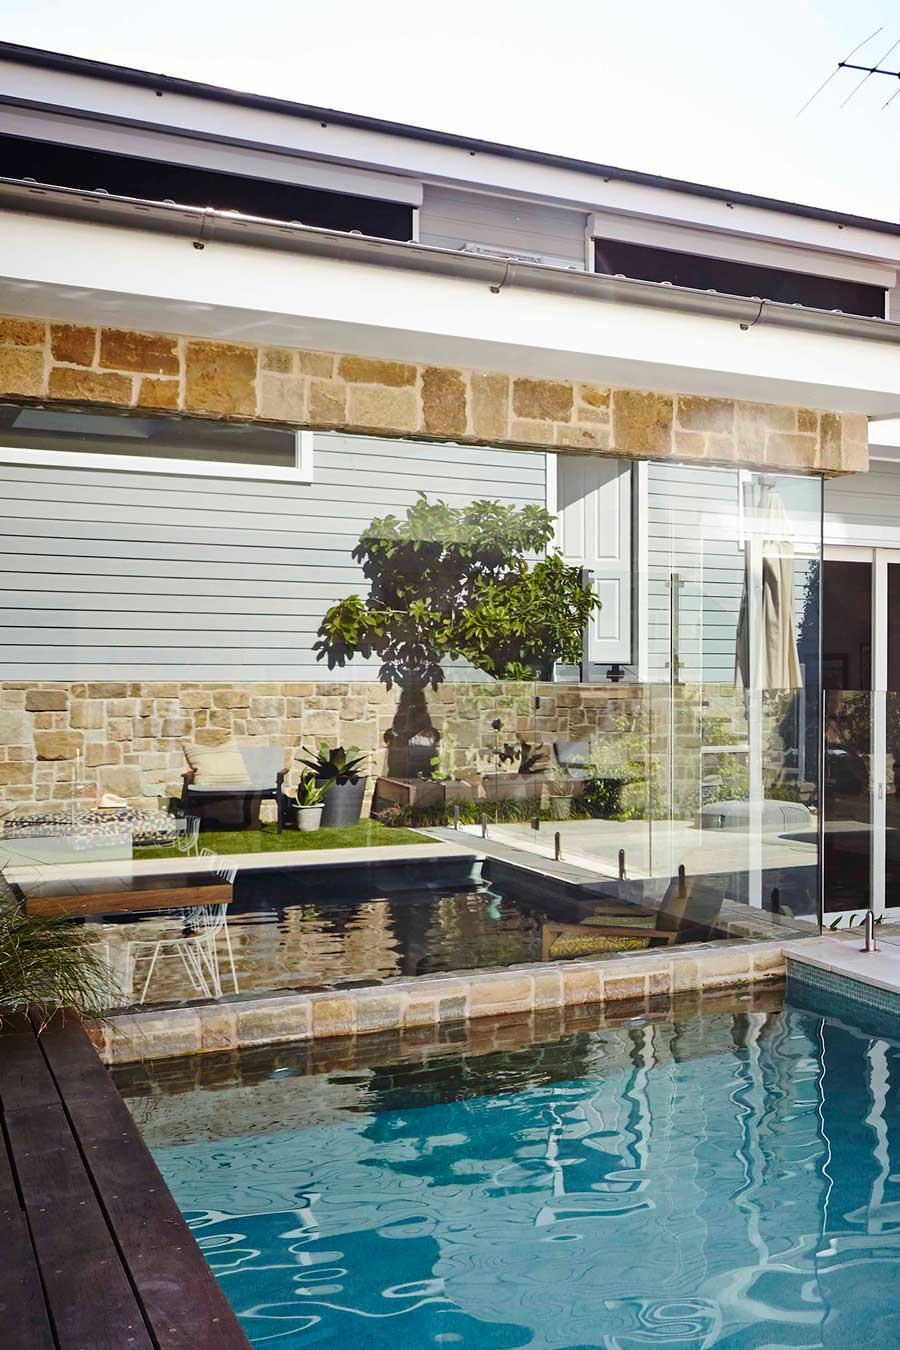 Compliment the home by making use of existing materials to extend out to your pool surround. Image by Natalie Hunfalvay